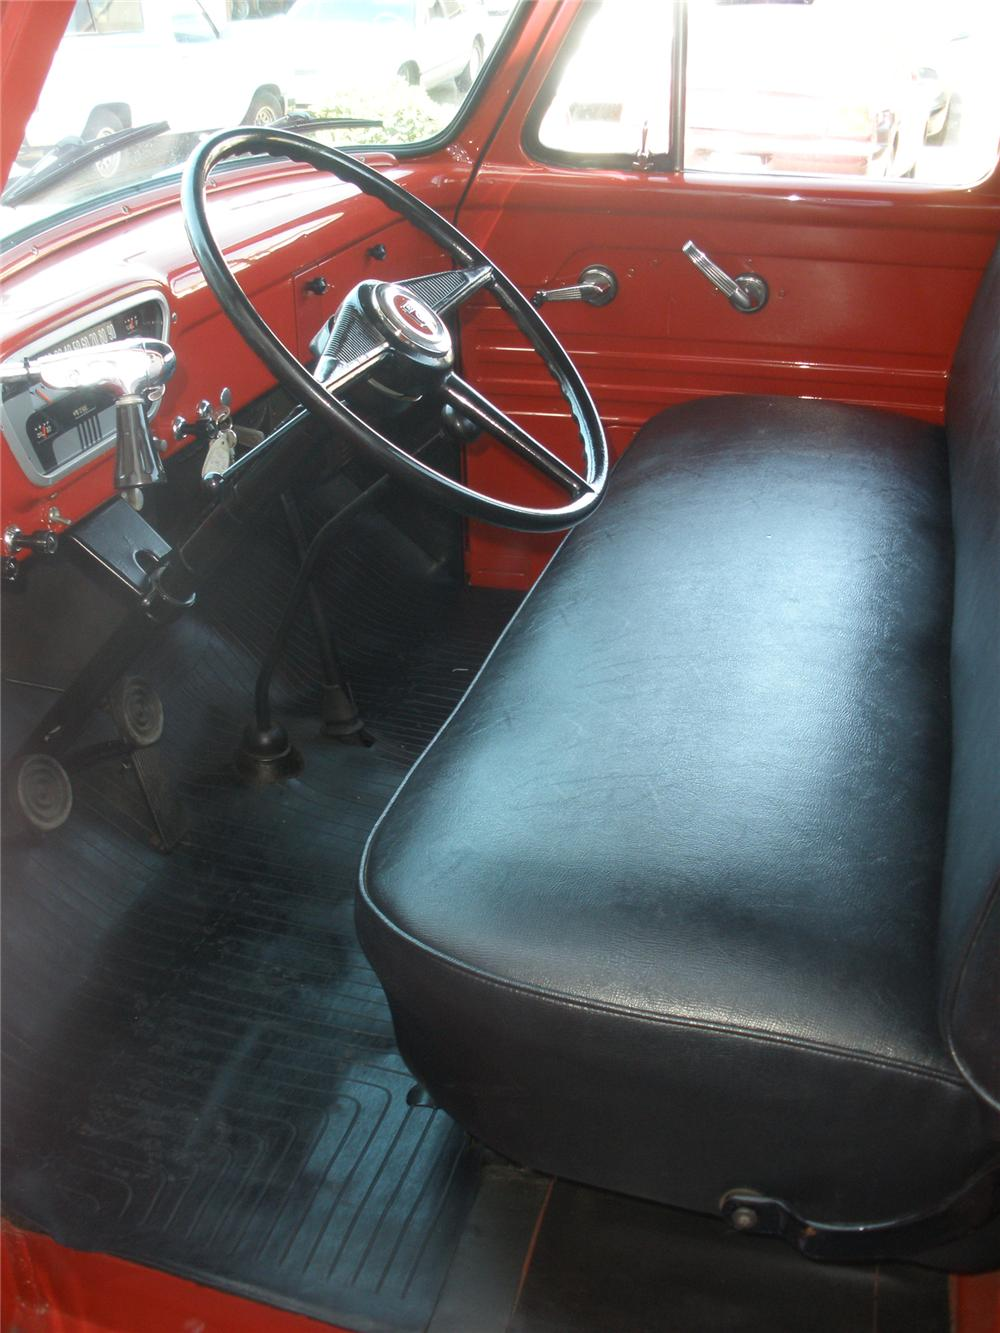 1953 FORD F-250 PICKUP - Interior - 79278